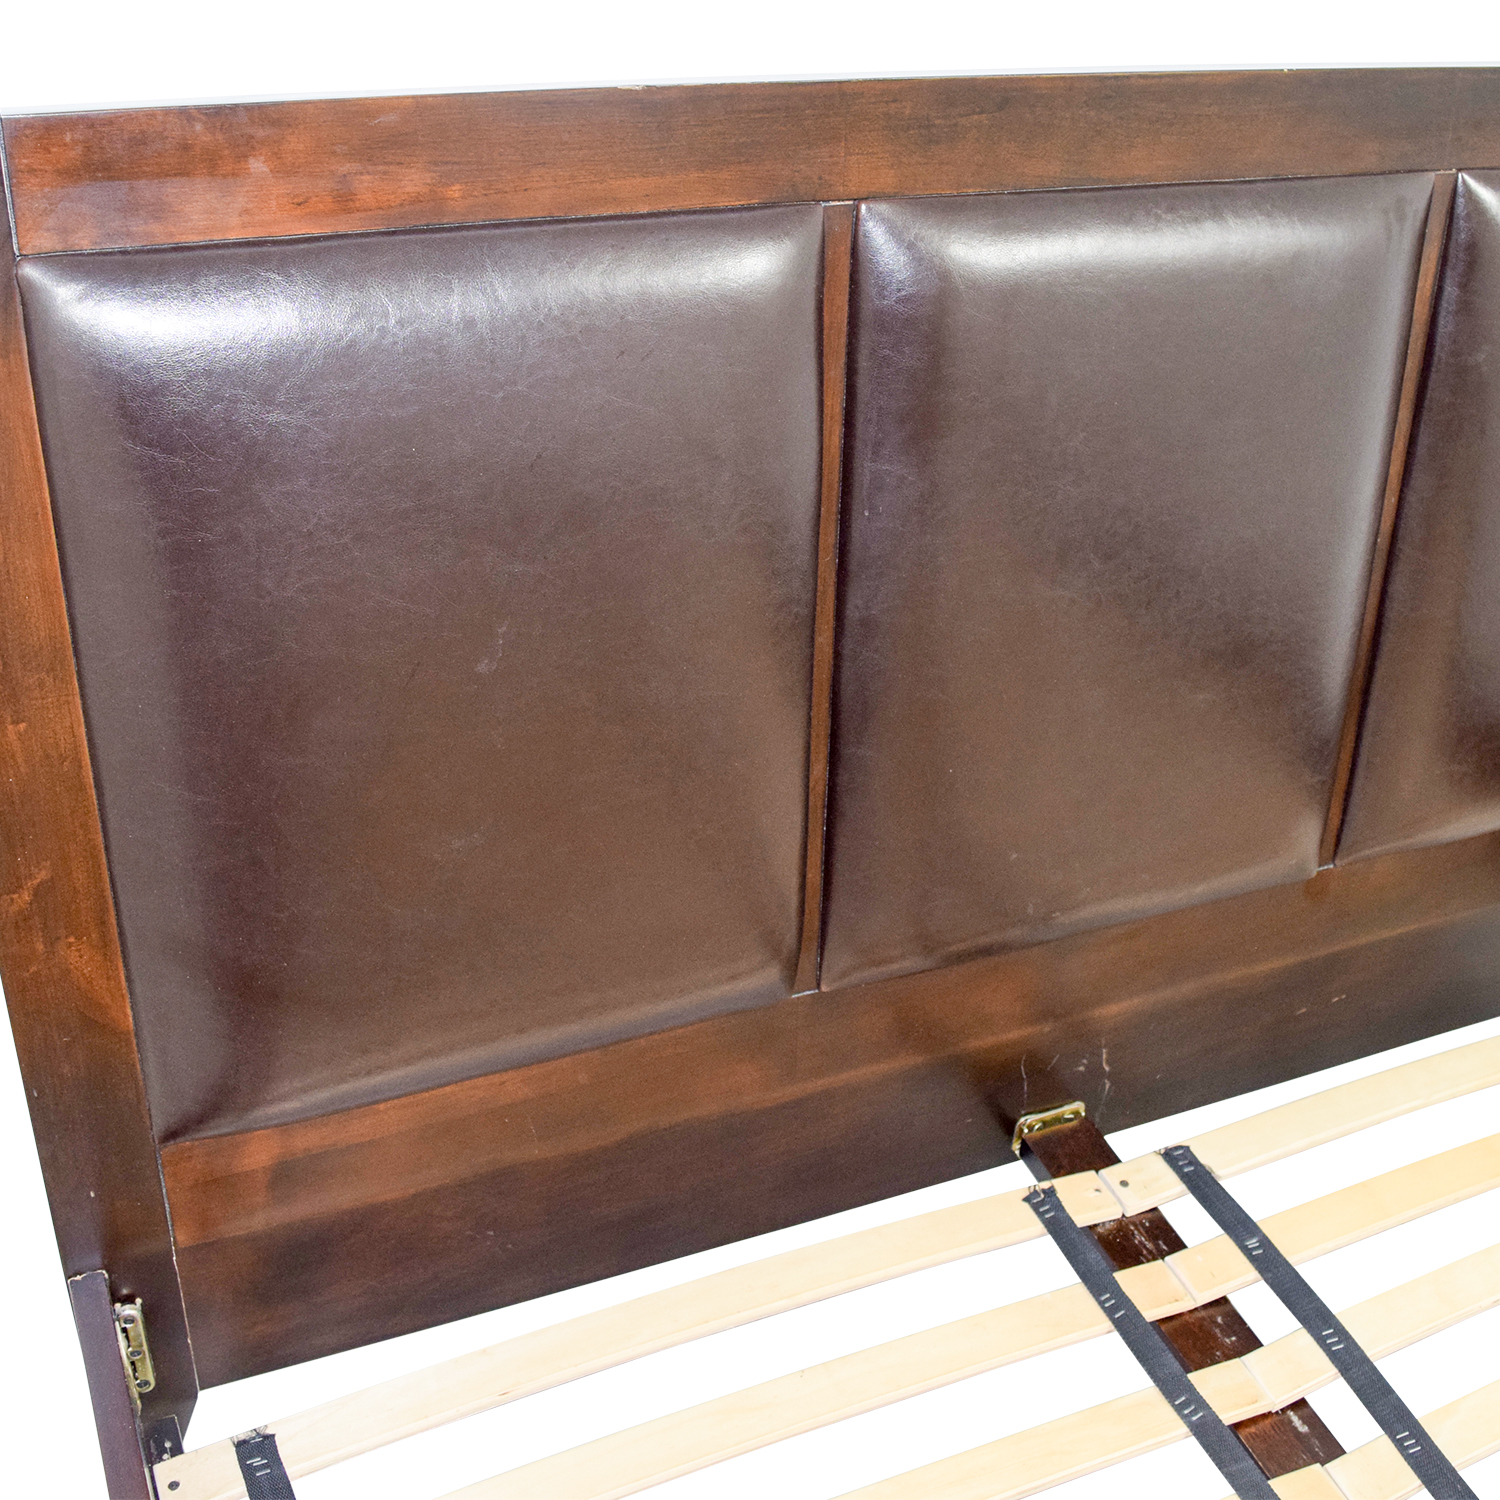 crate and barrel leather sofa bed antique french table 72 off brown